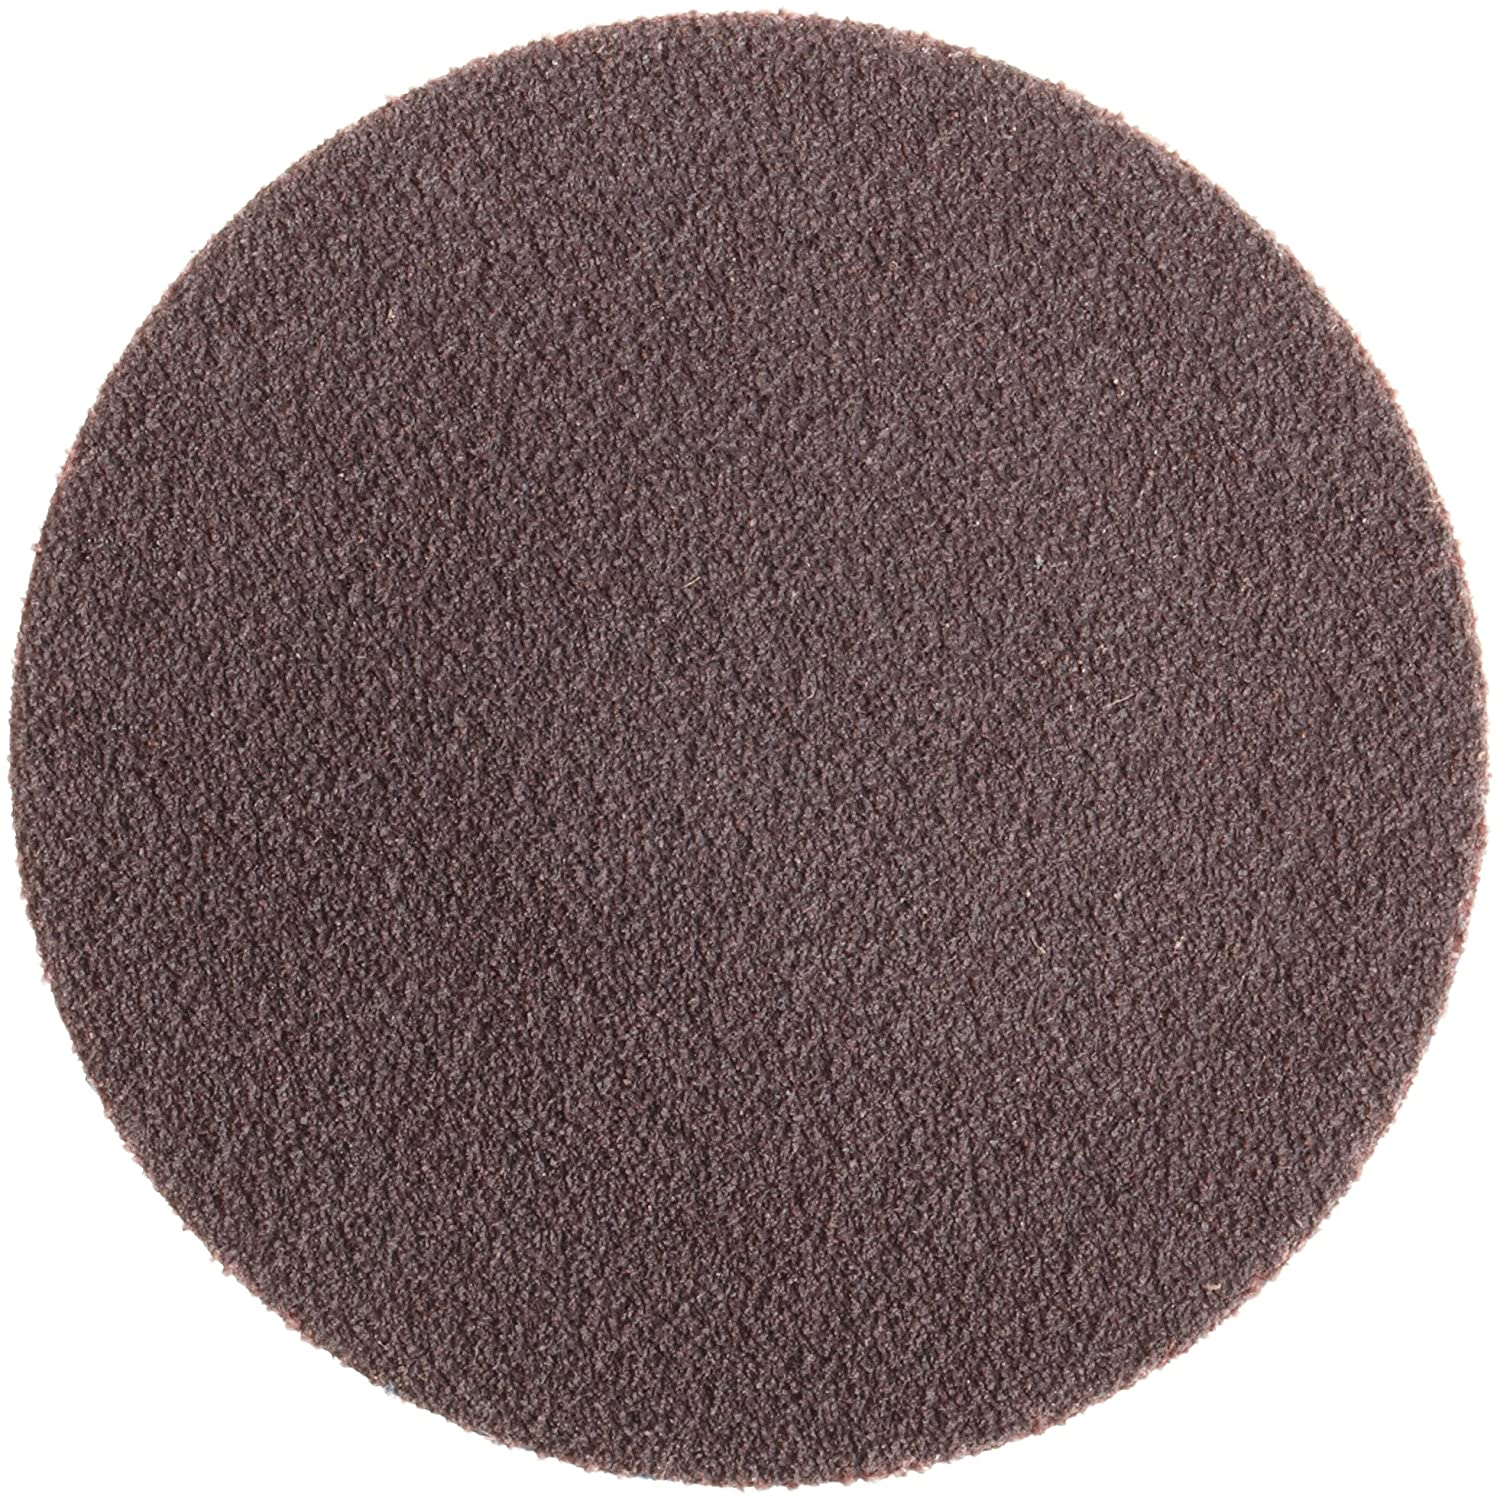 "Norton R228 Metalite Speed-Lok Abrasive Disc, Cloth Backing, TR, Aluminum Oxide, 3"" Diameter, Grit 80 (Pack of 50)"